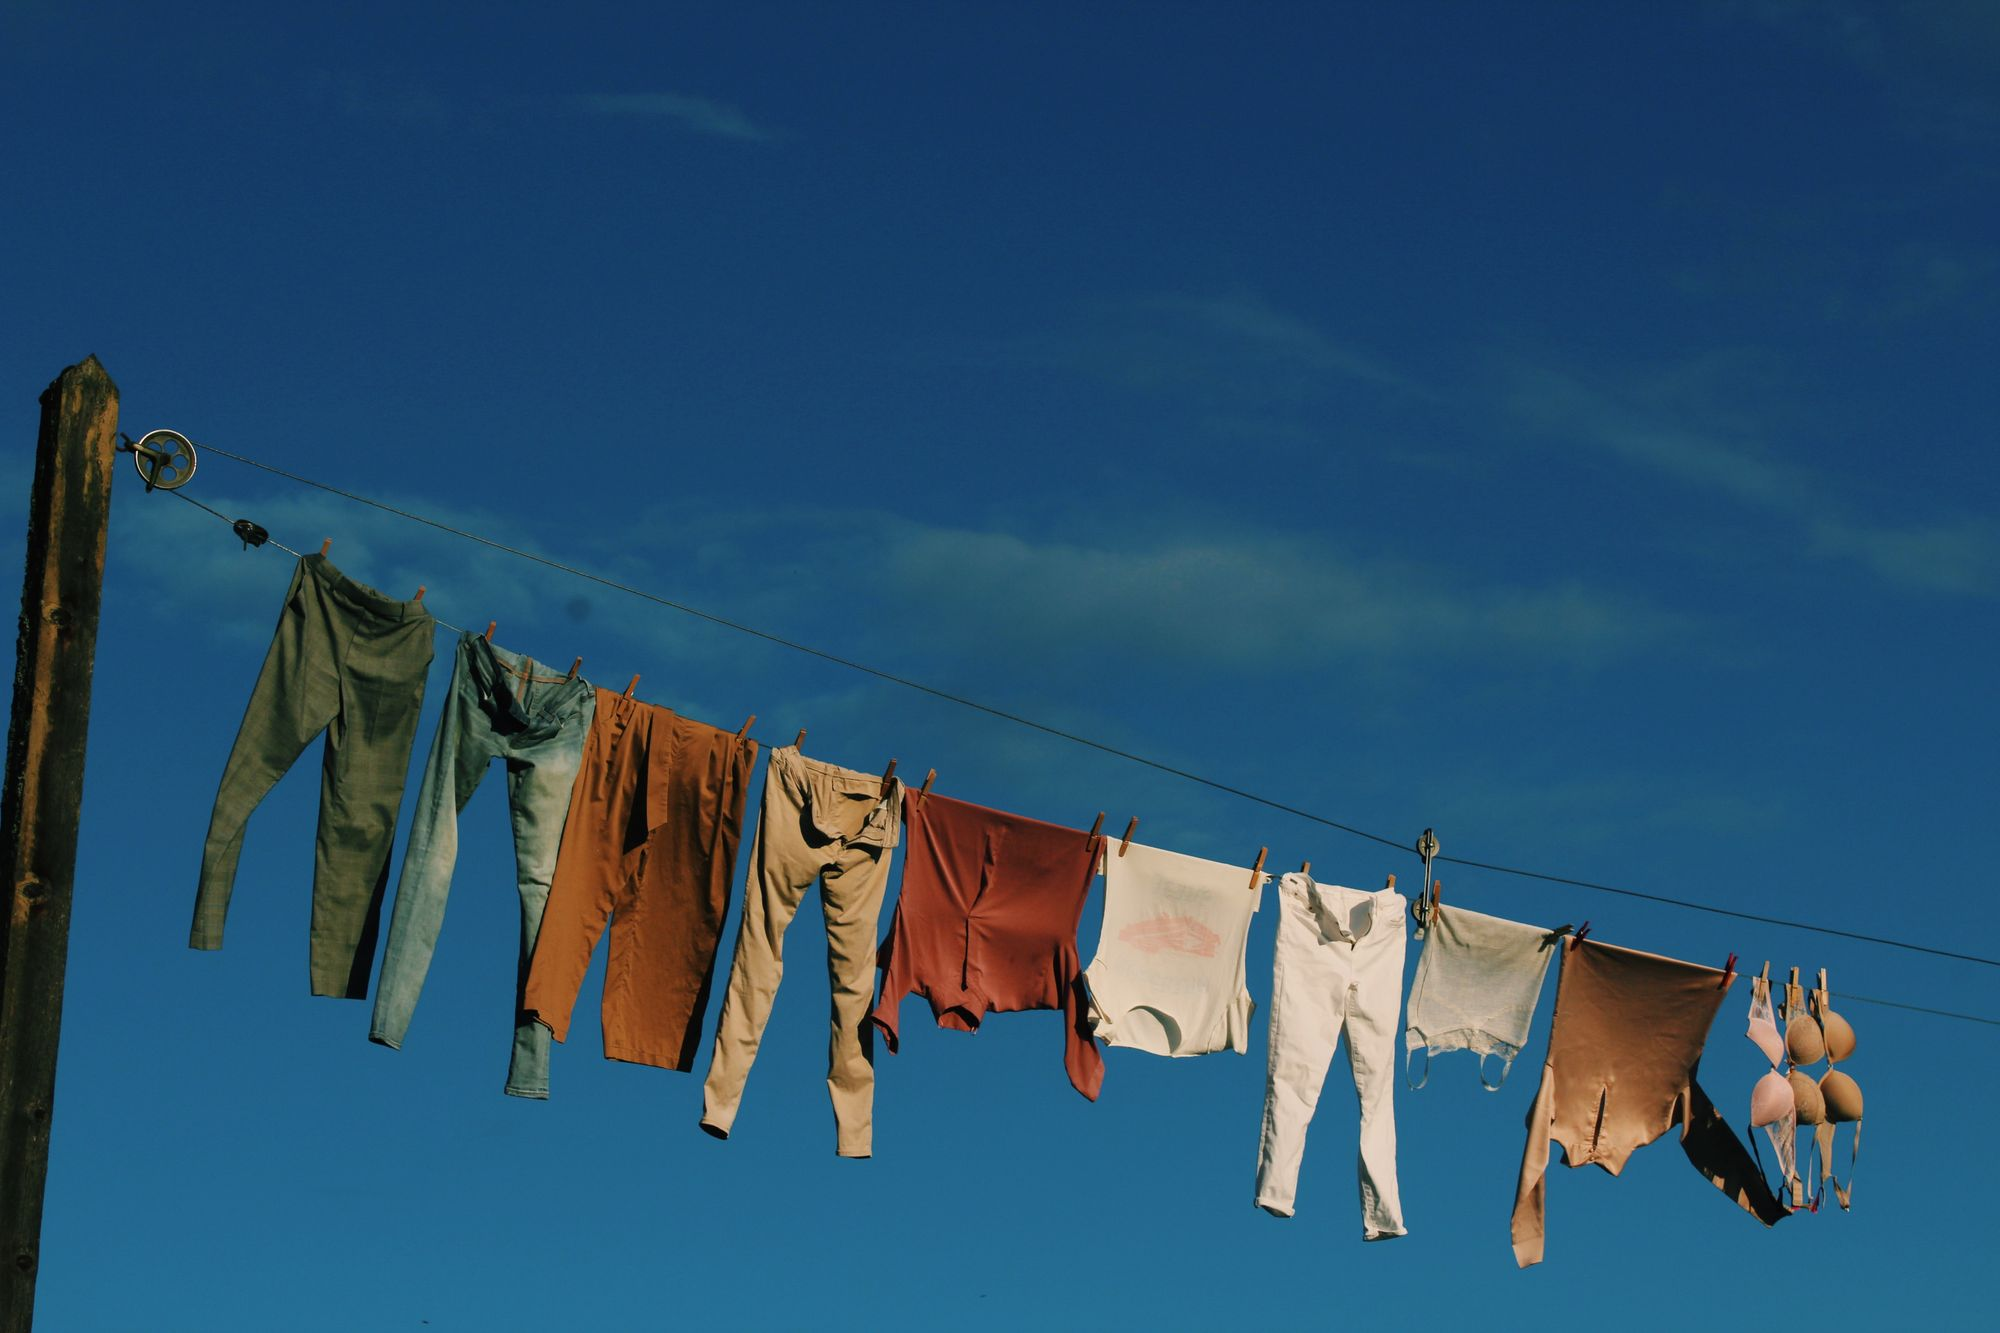 Laundry clothes hanging from a washing line